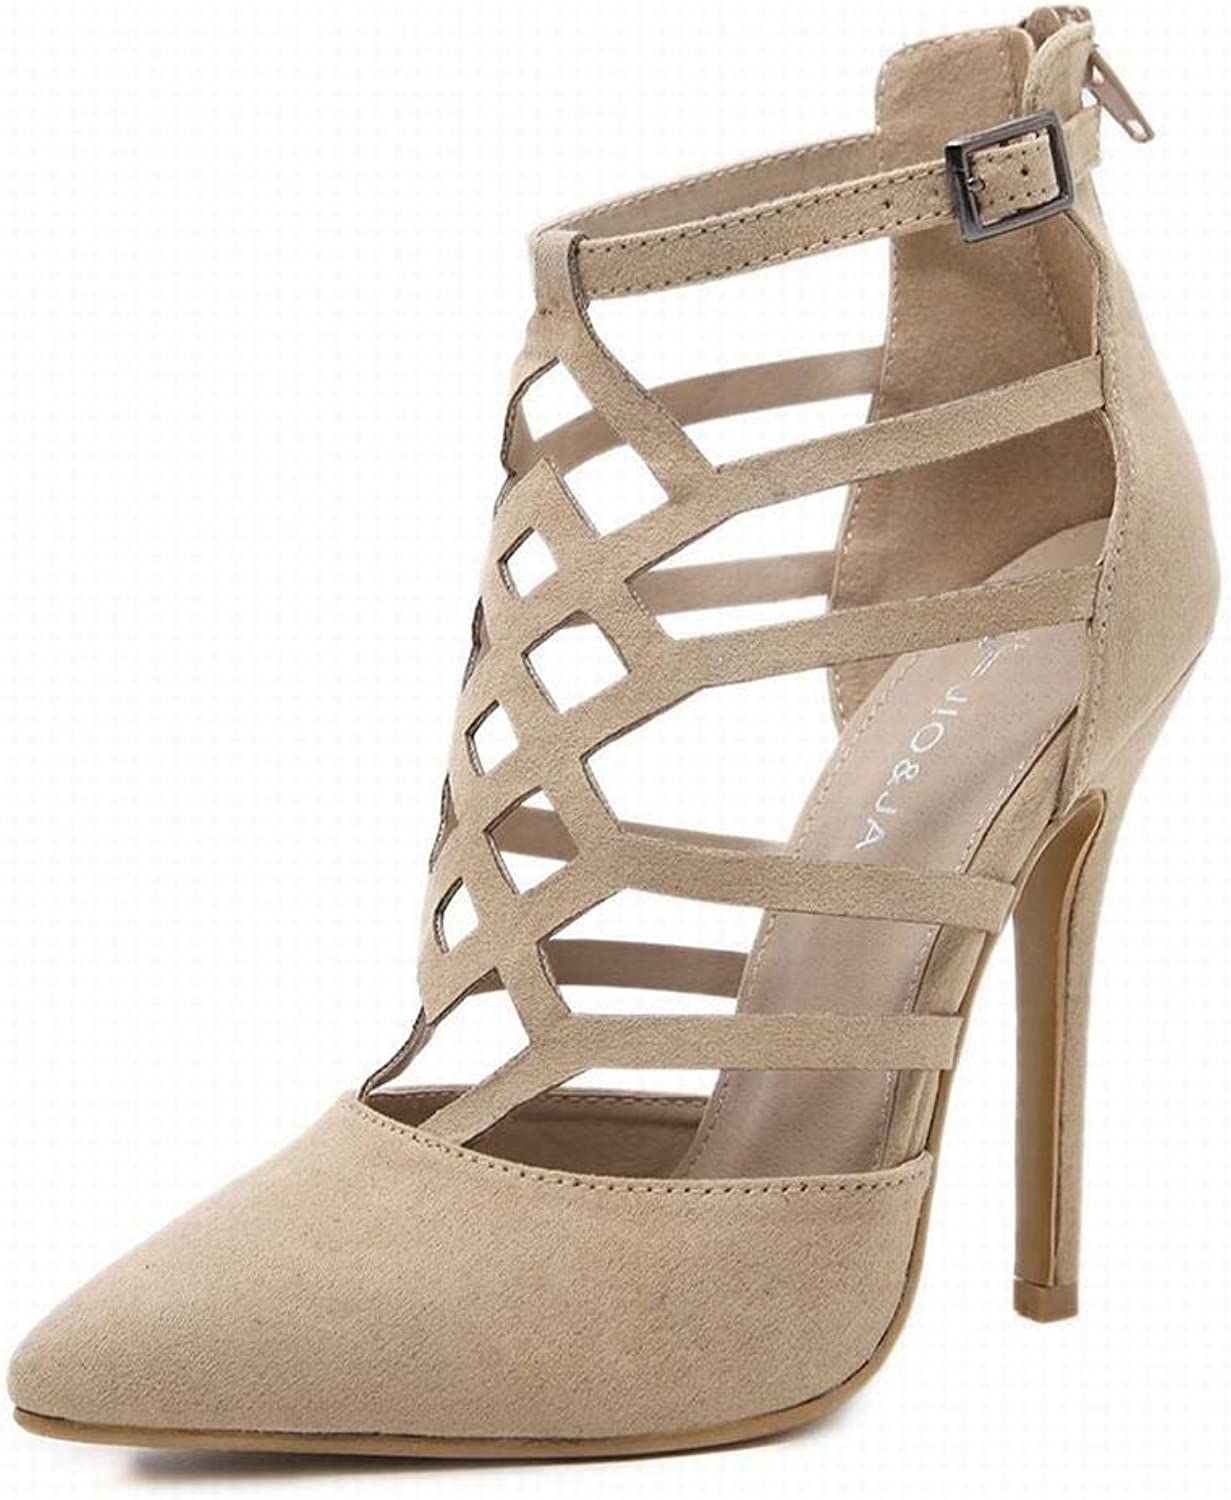 YUKILO Women's Suede High Heels Sexy Hollow Pointed High-top Sandals (color   Aprikosen, Size   39)